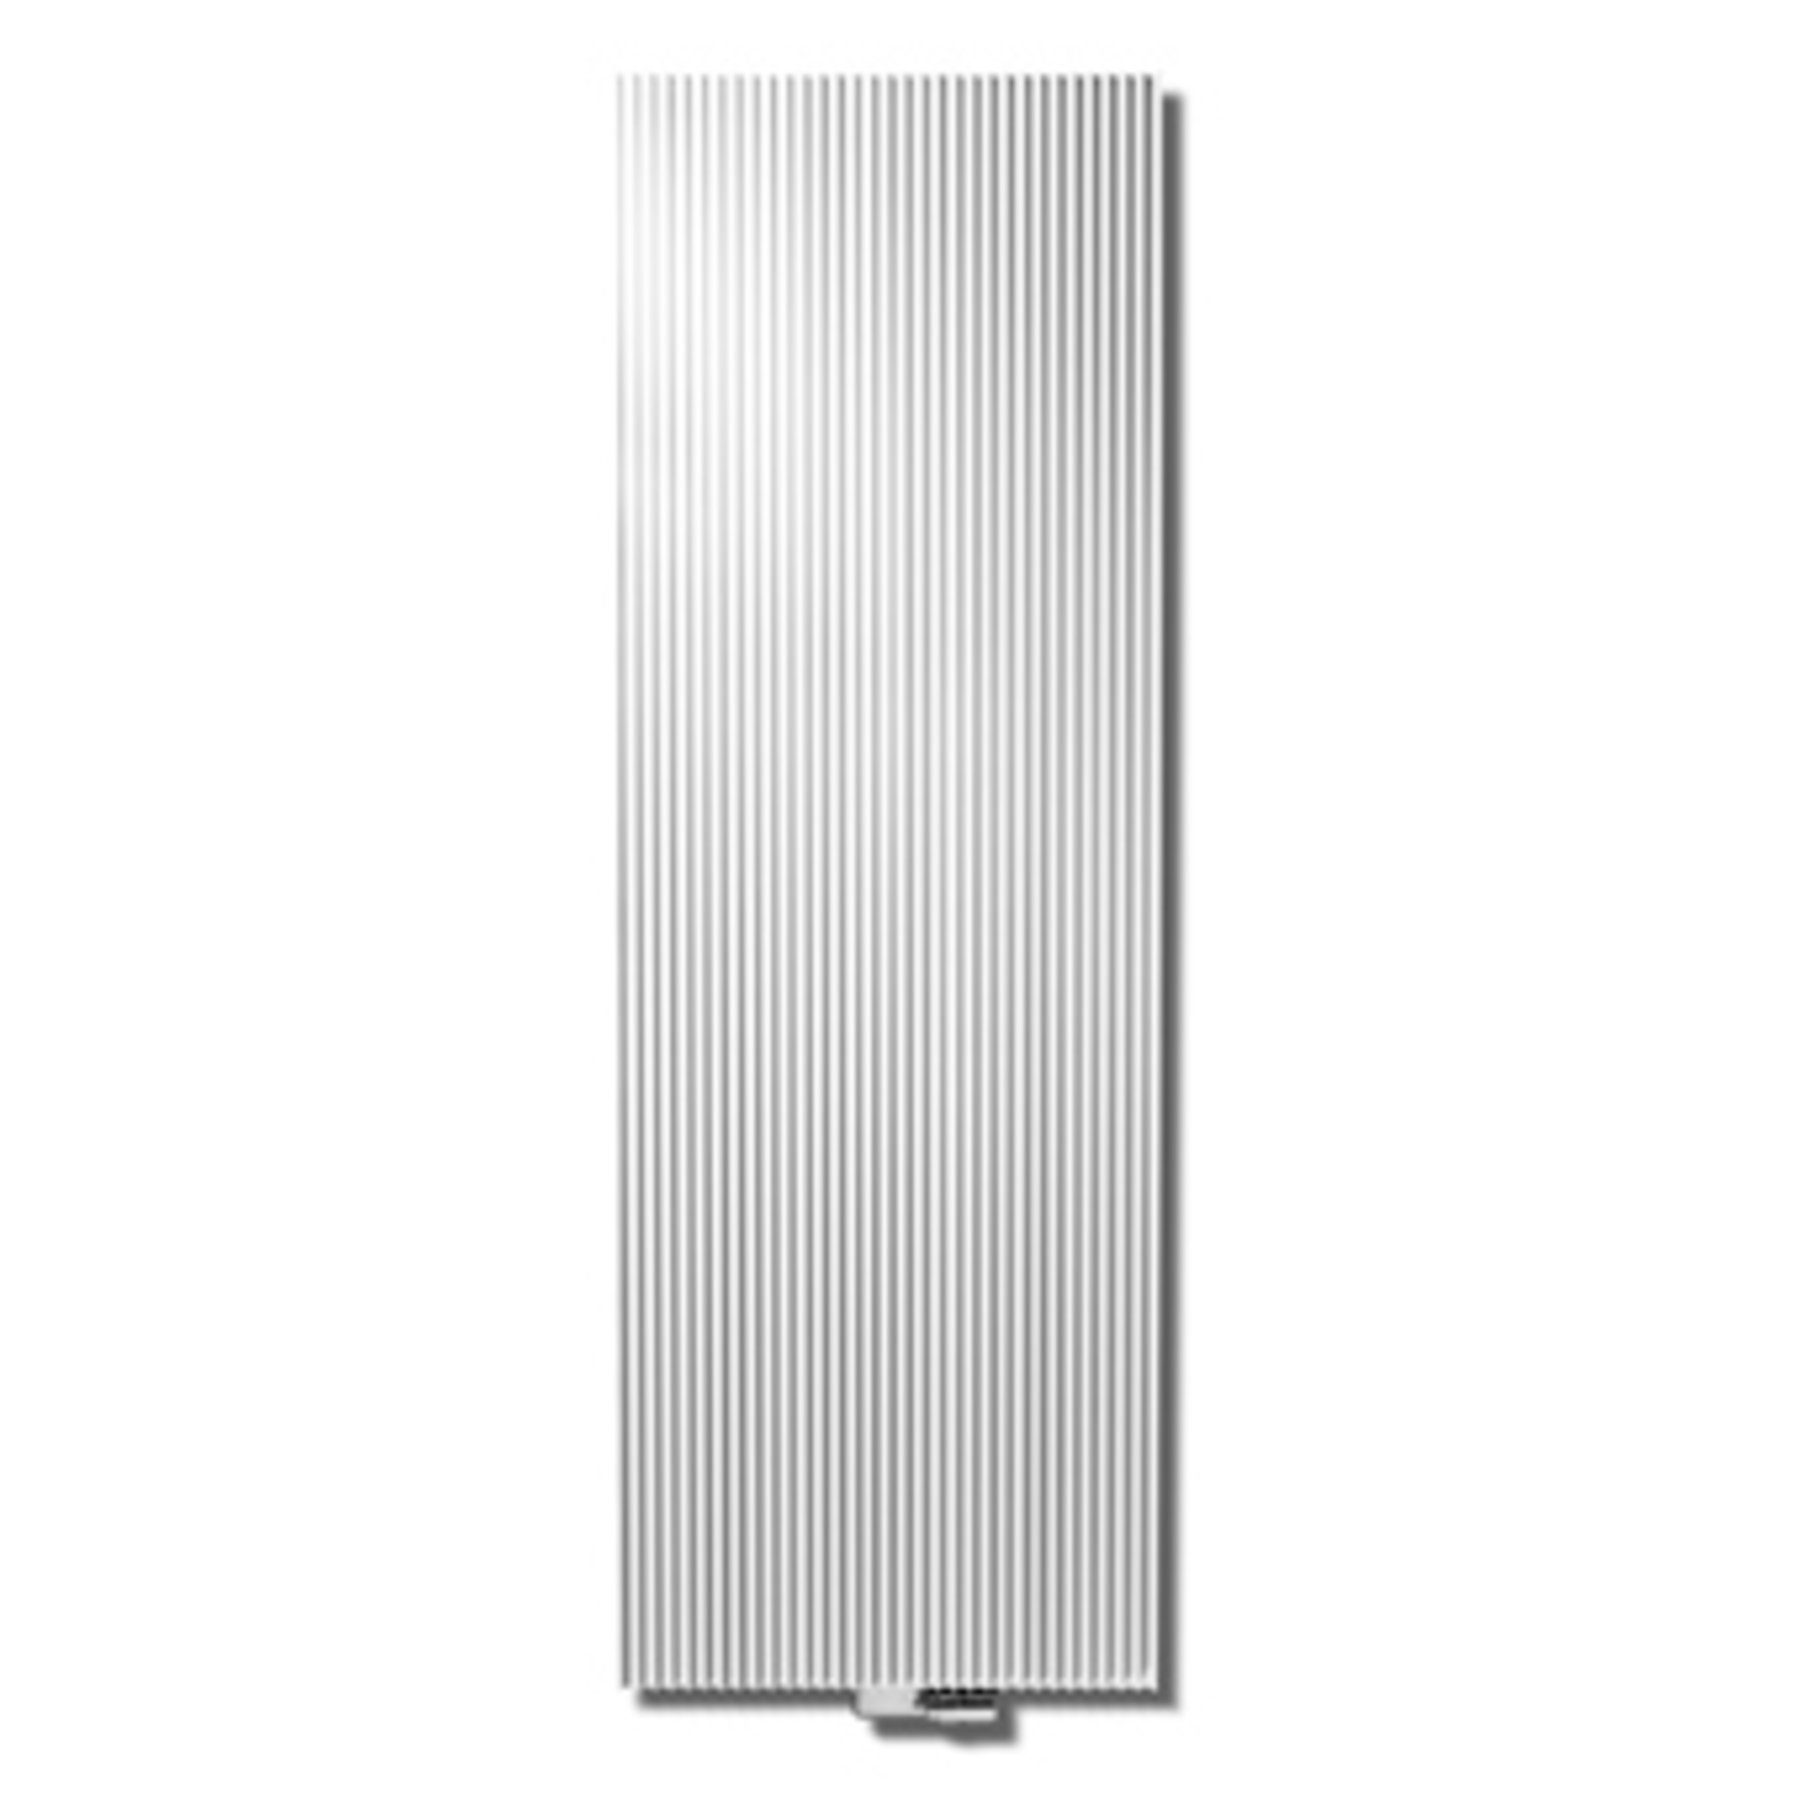 Vasco Canyon designradiator verticaal 1600x530mm 1685 watt aansluiting 66 zwart (M300)